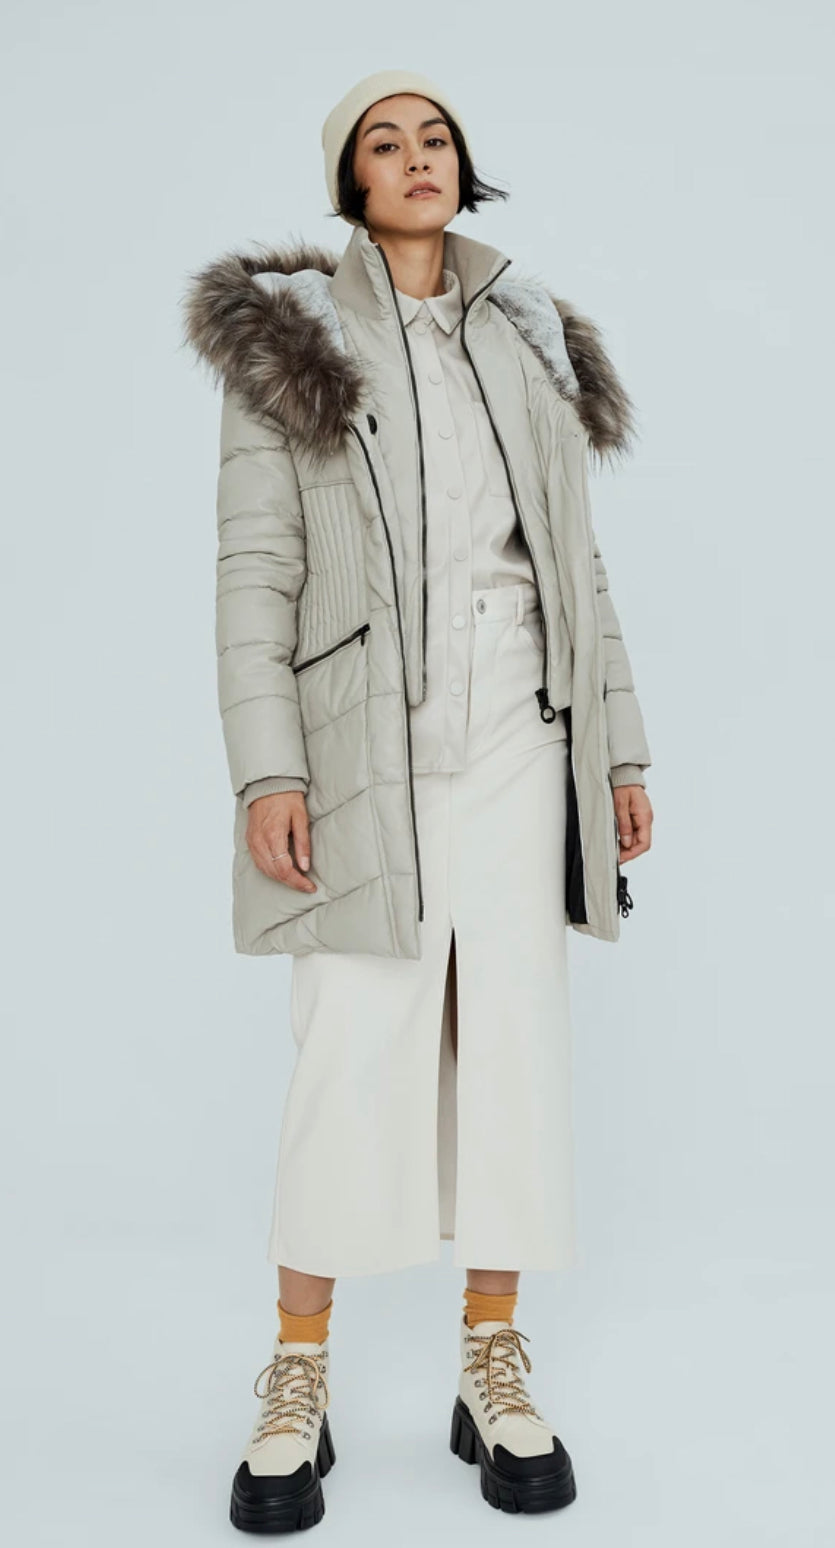 GIGI-X COAT - Almond